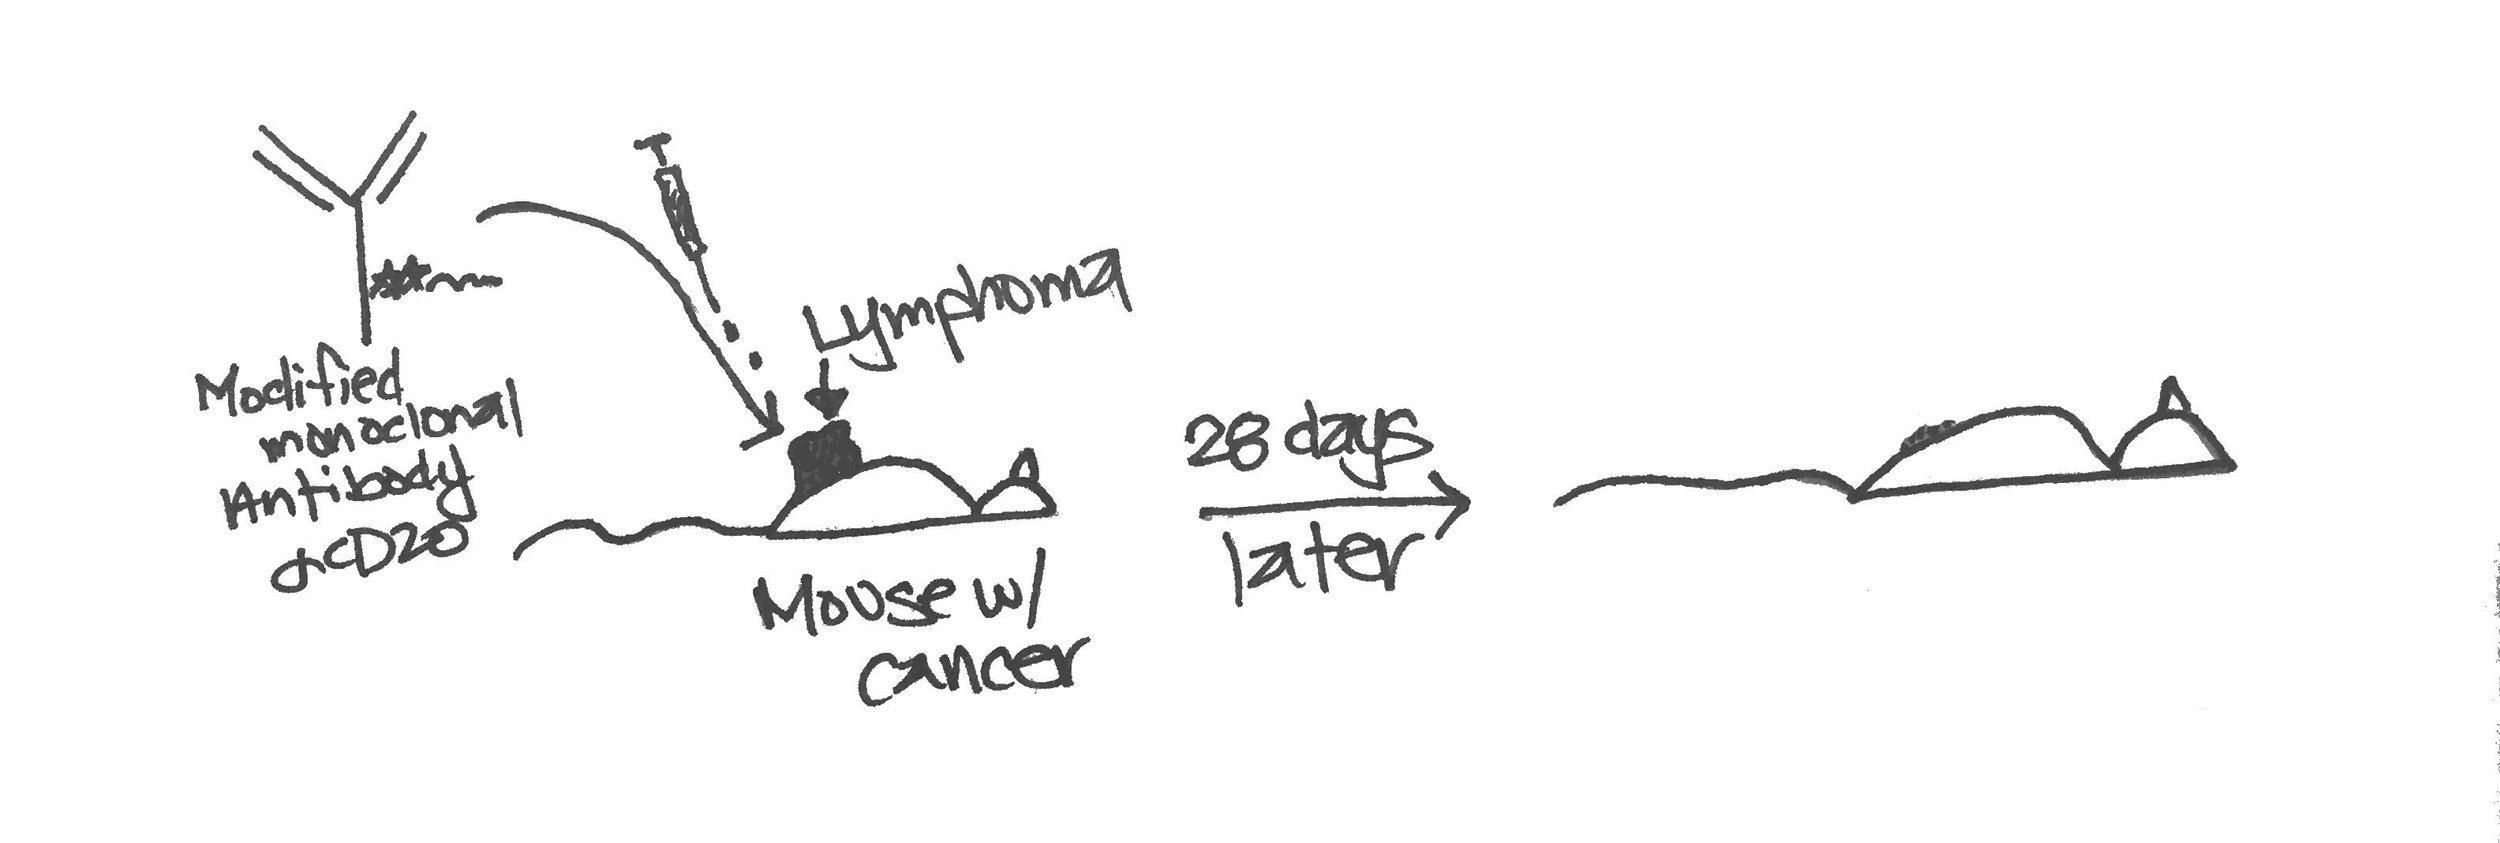 This doodle is of an in vivo assay testing whether the modified antibody can treat mouse lymphoma.